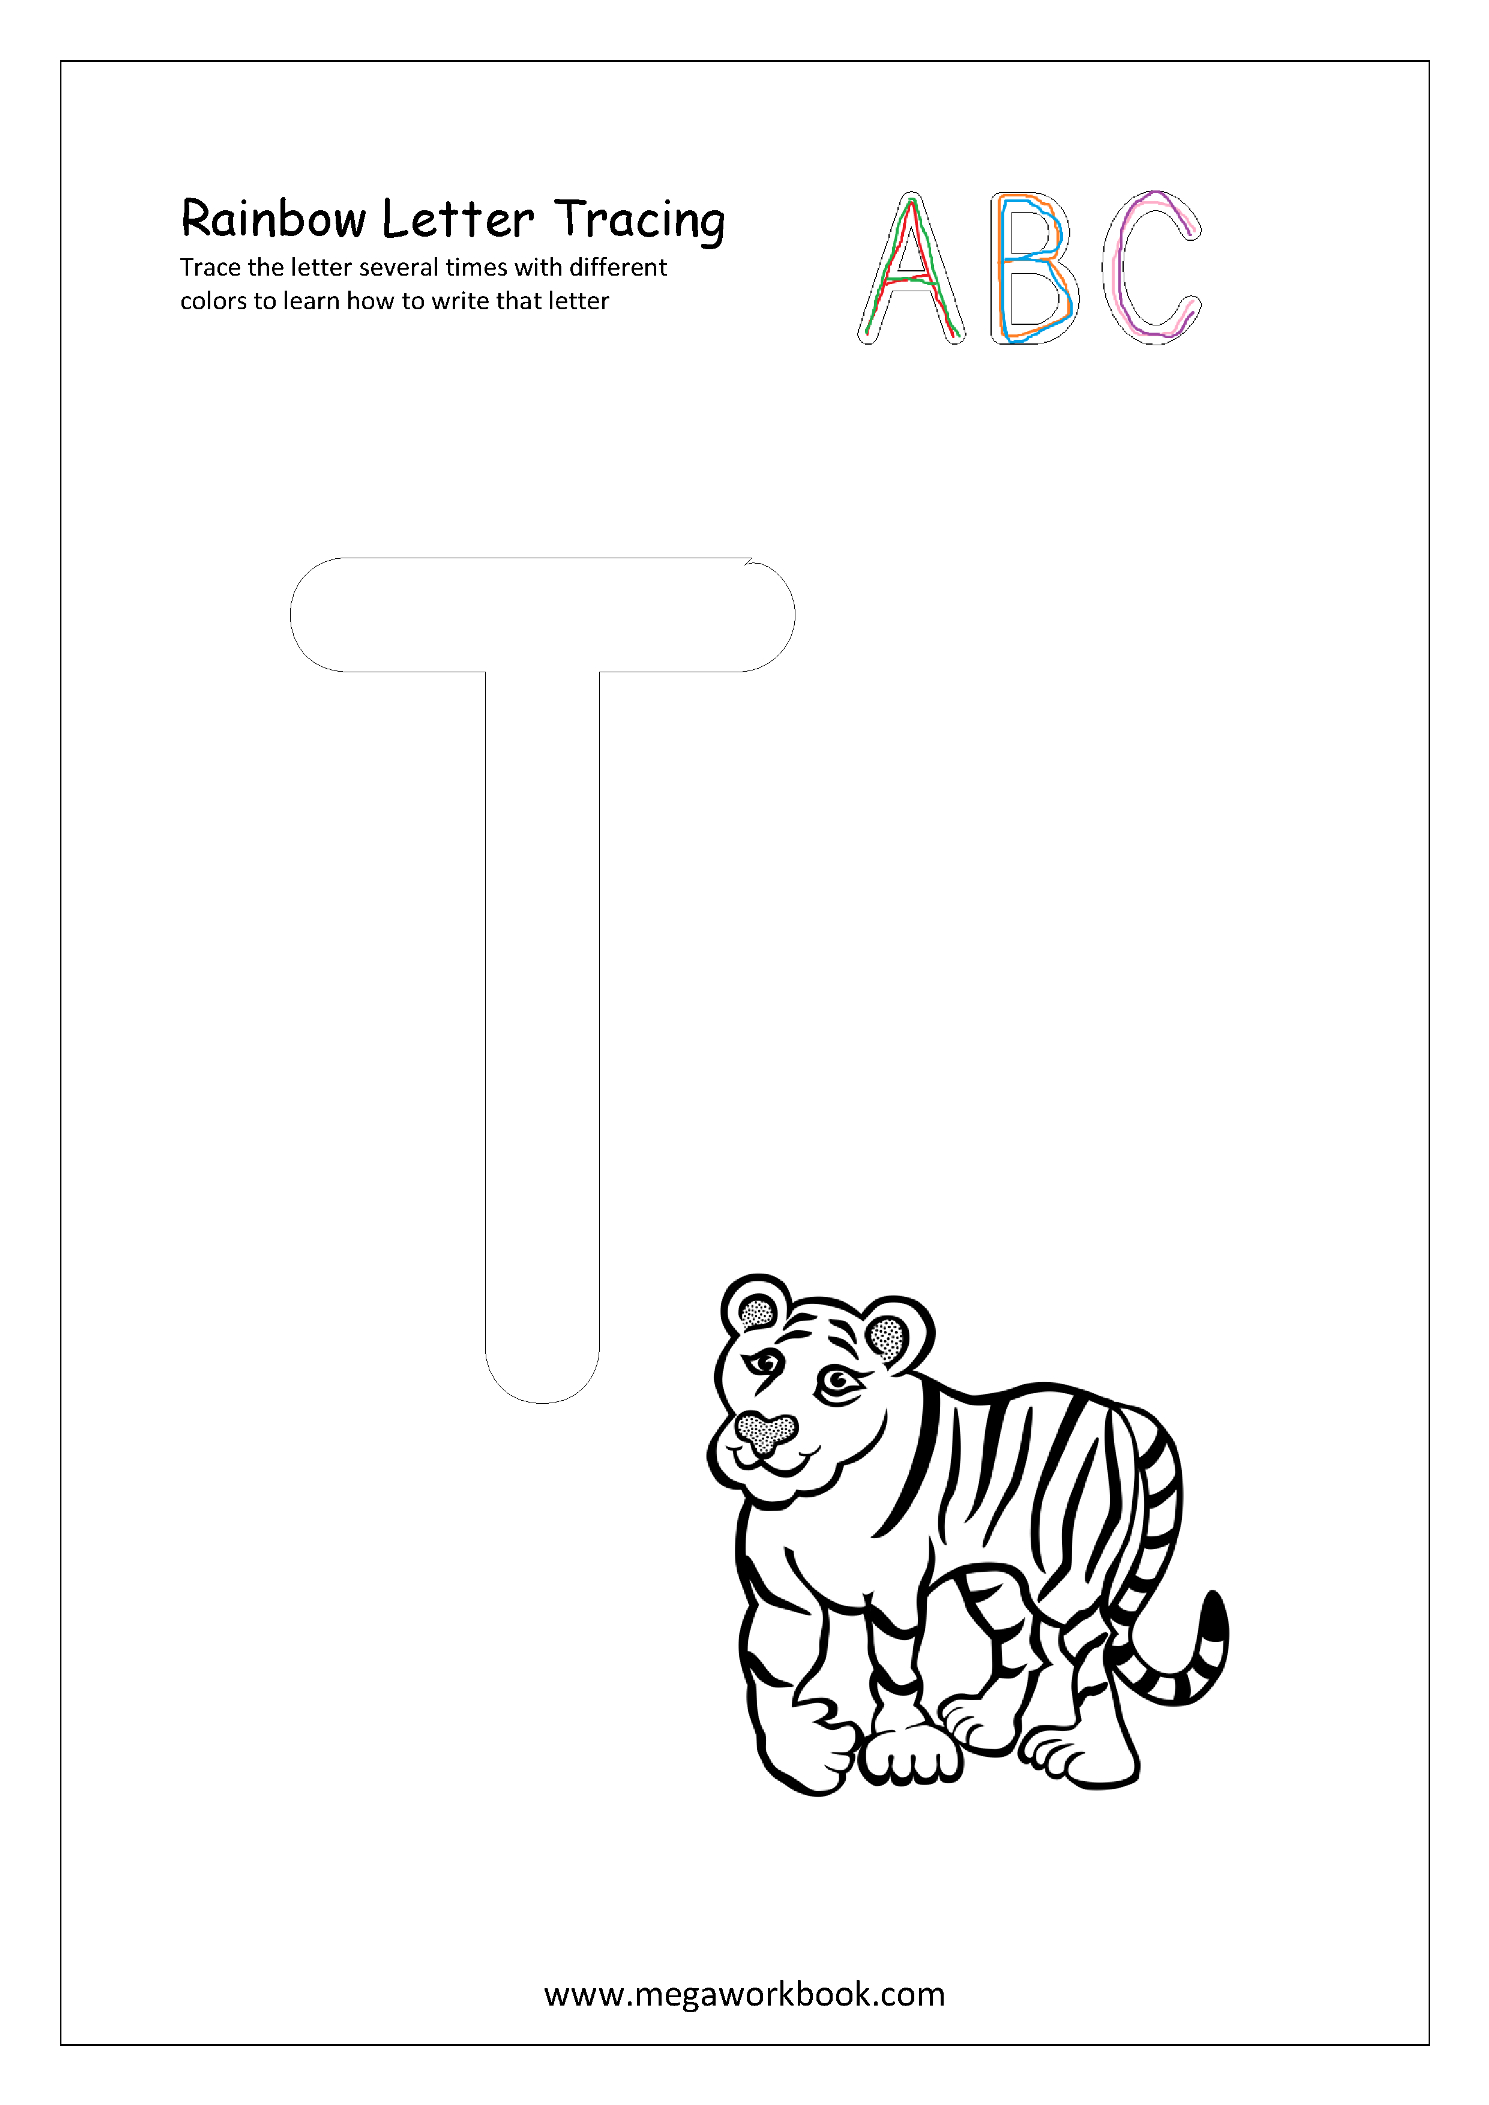 Rainbow Letter Tracing For Capital Letters - Alphabet regarding Rainbow Tracing Letters